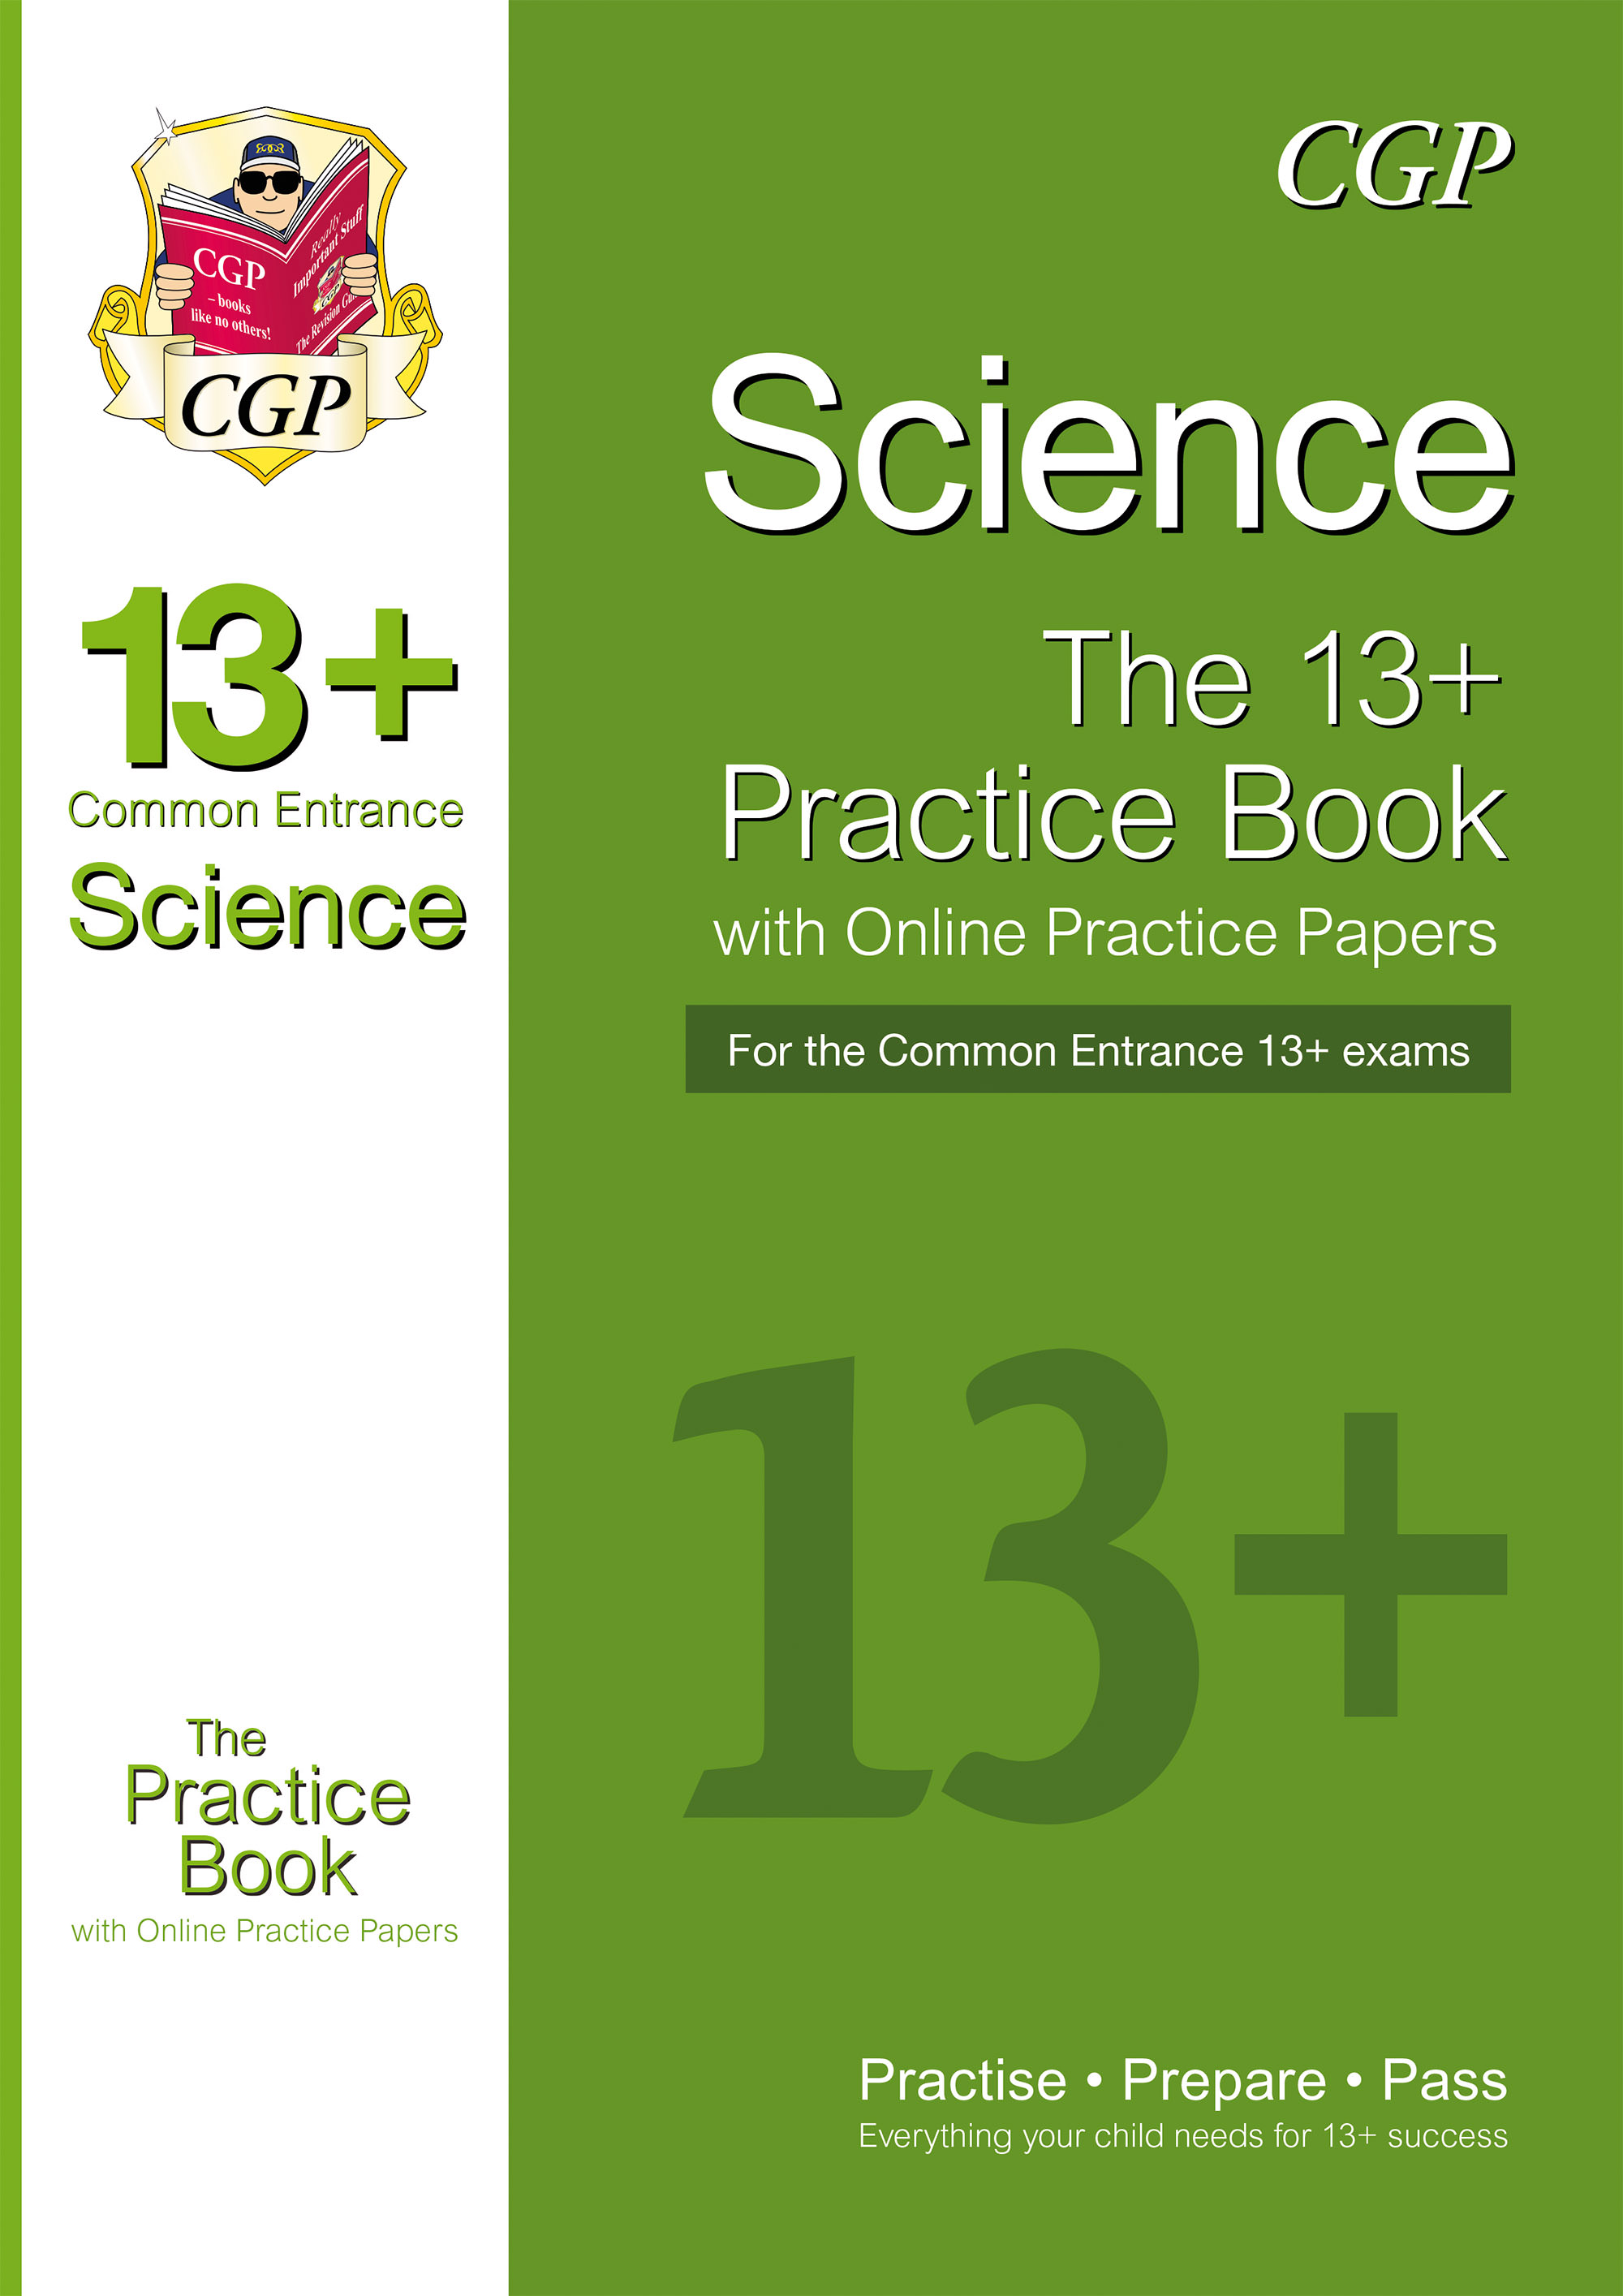 SIQT1DK - New 13+ Science Practice Book for the Common Entrance Exams with Answers